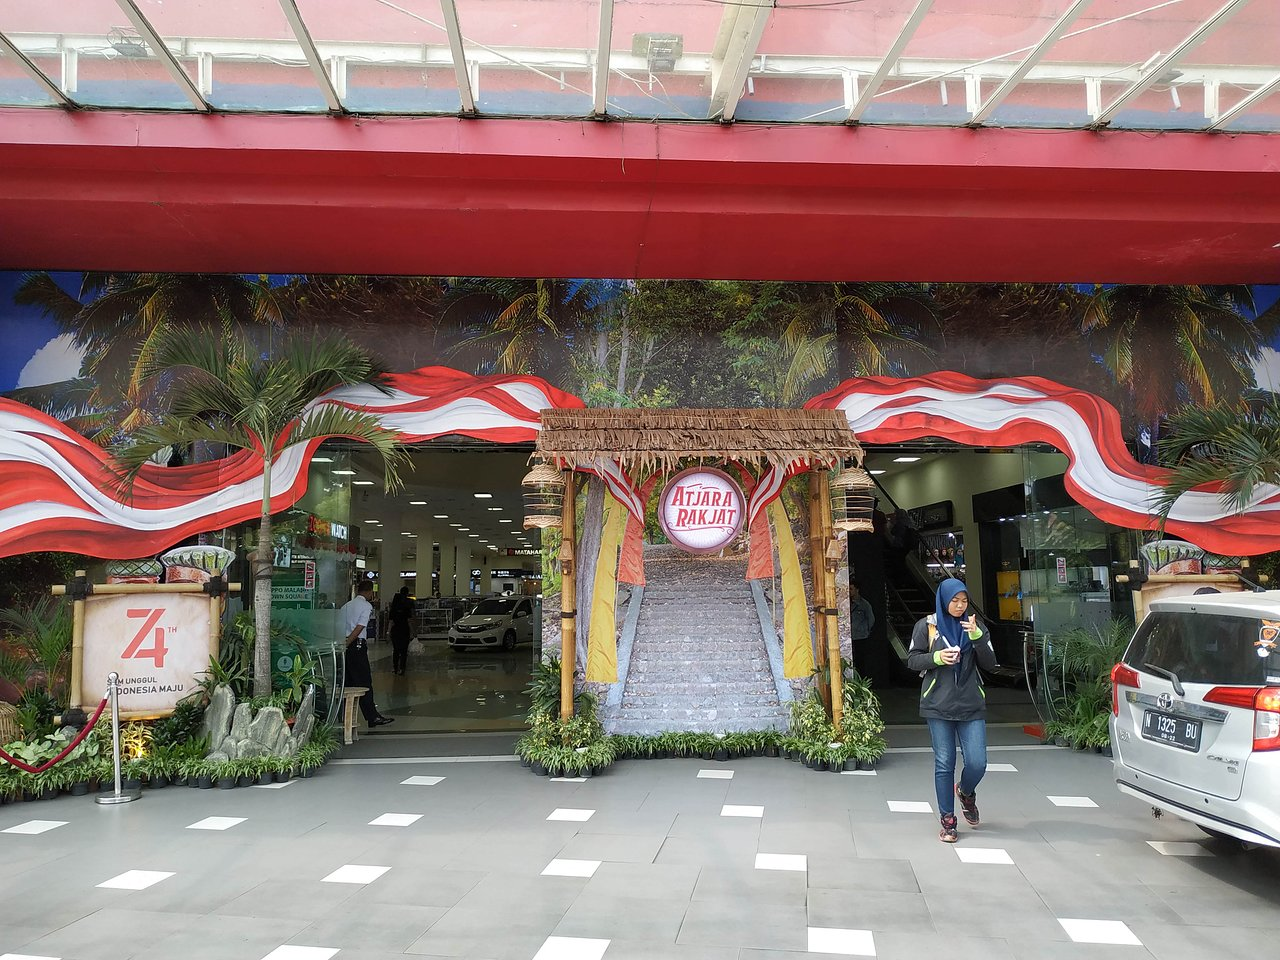 Malang Town Square 2020 All You Need To Know Before You Go With Photos Tripadvisor